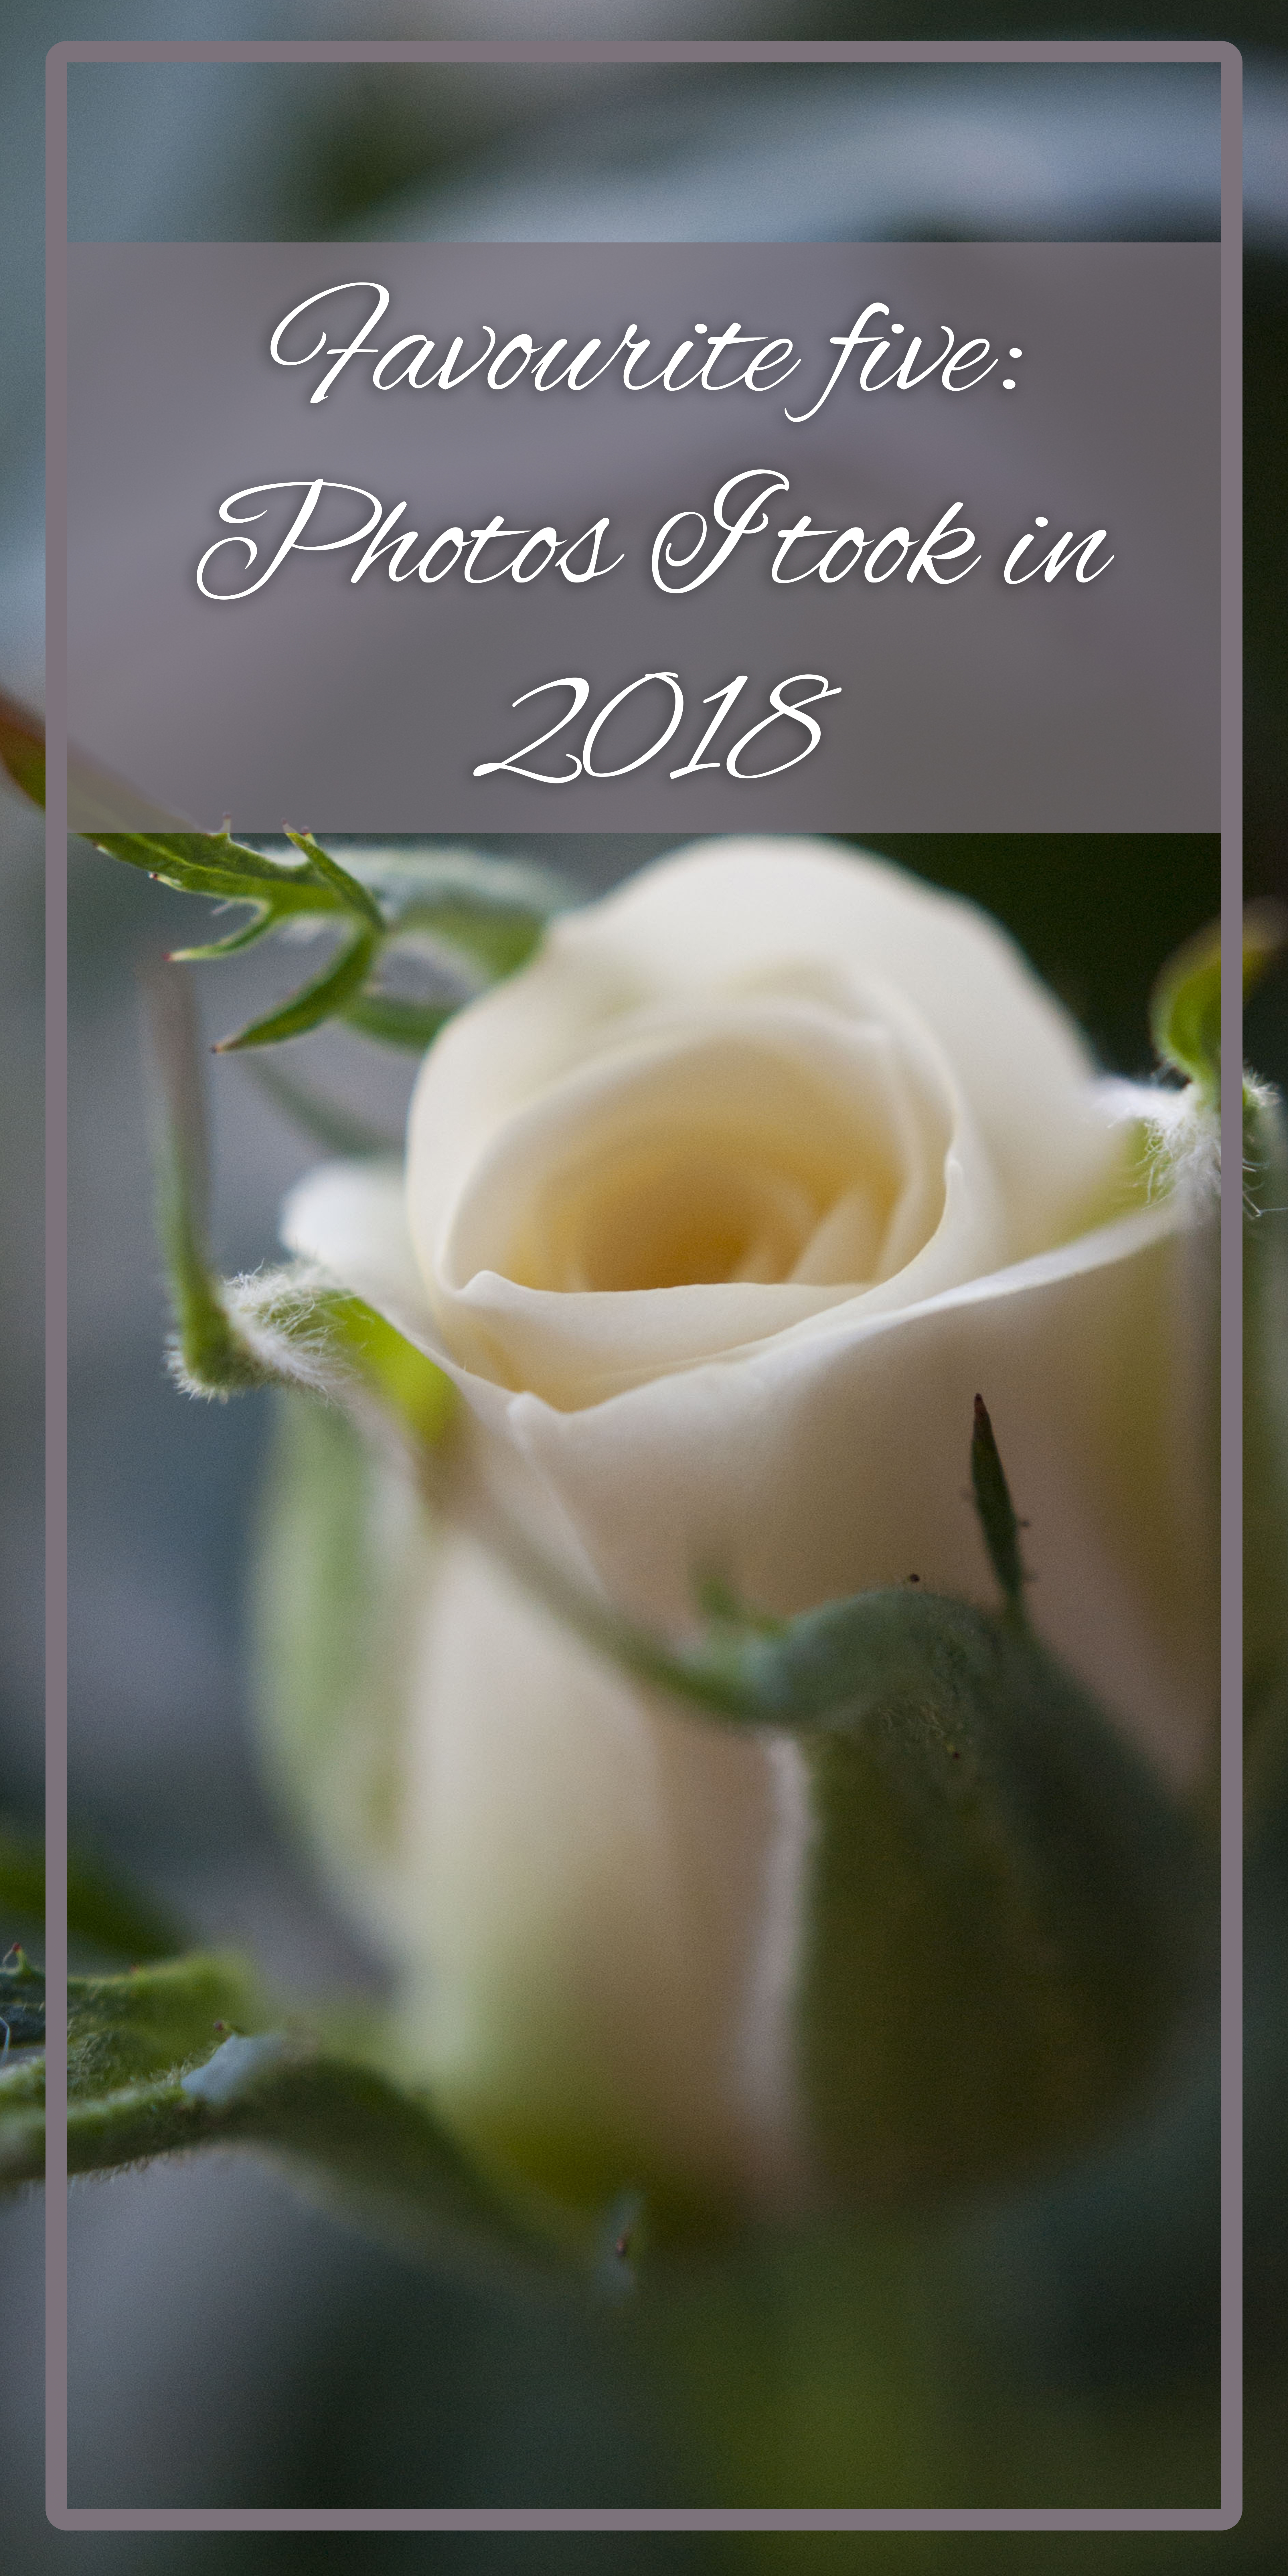 "A picture of a rosebud with text overlaid that says ""Favourite five: Photos I took in 2018."""